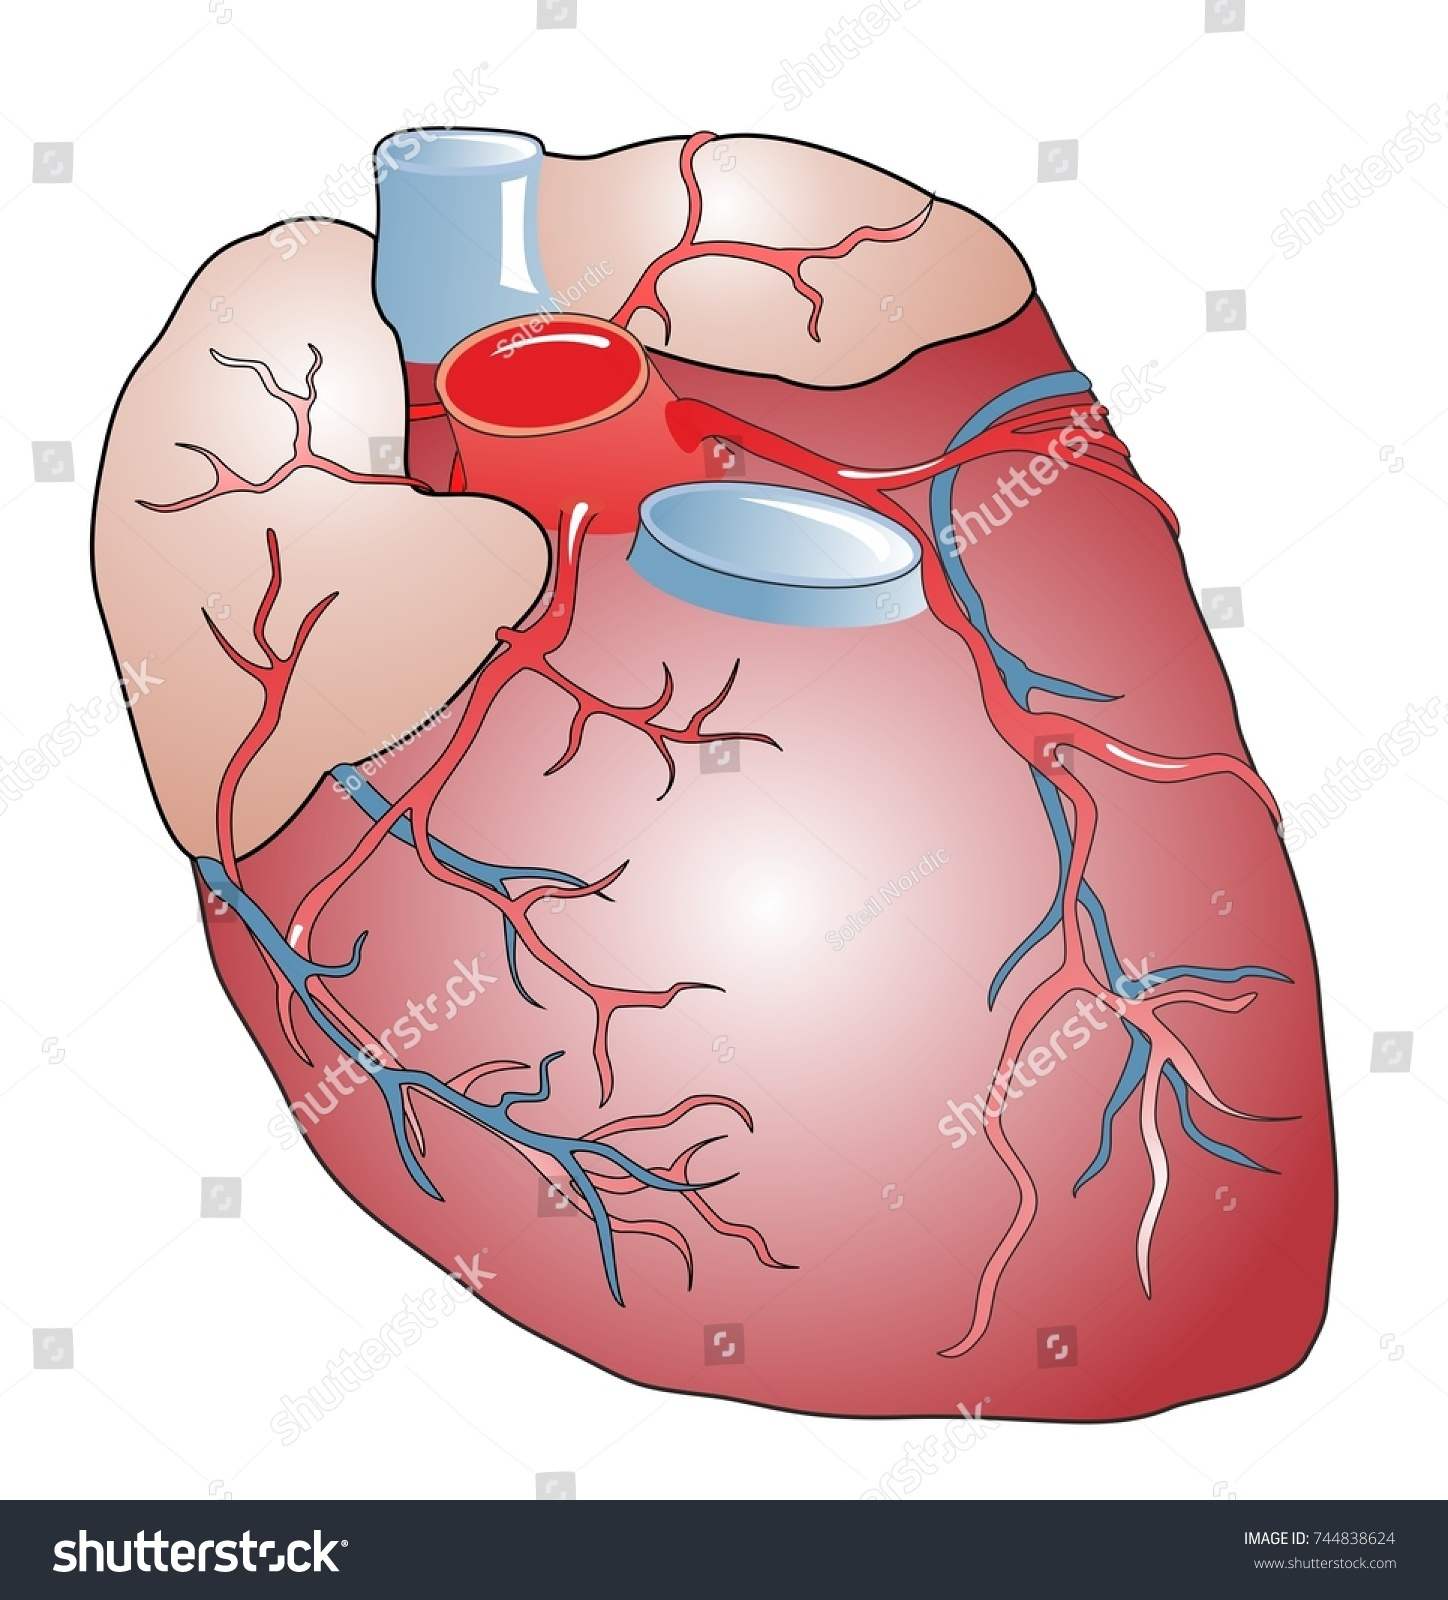 Anatomy Healthy Human Heart Heart Muscular Stock Illustration